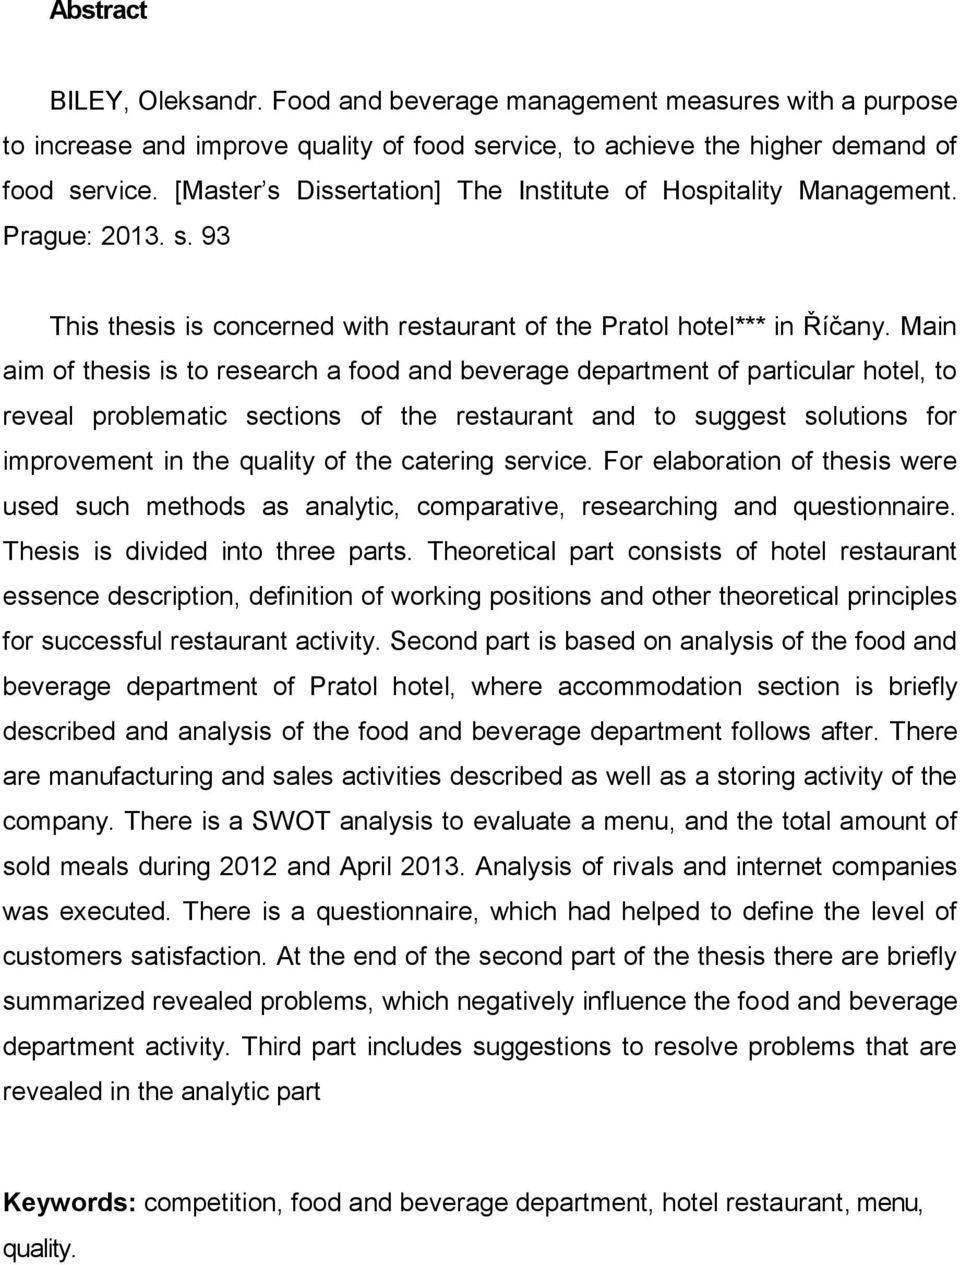 Main aim of thesis is to research a food and beverage department of particular hotel, to reveal problematic sections of the restaurant and to suggest solutions for improvement in the quality of the